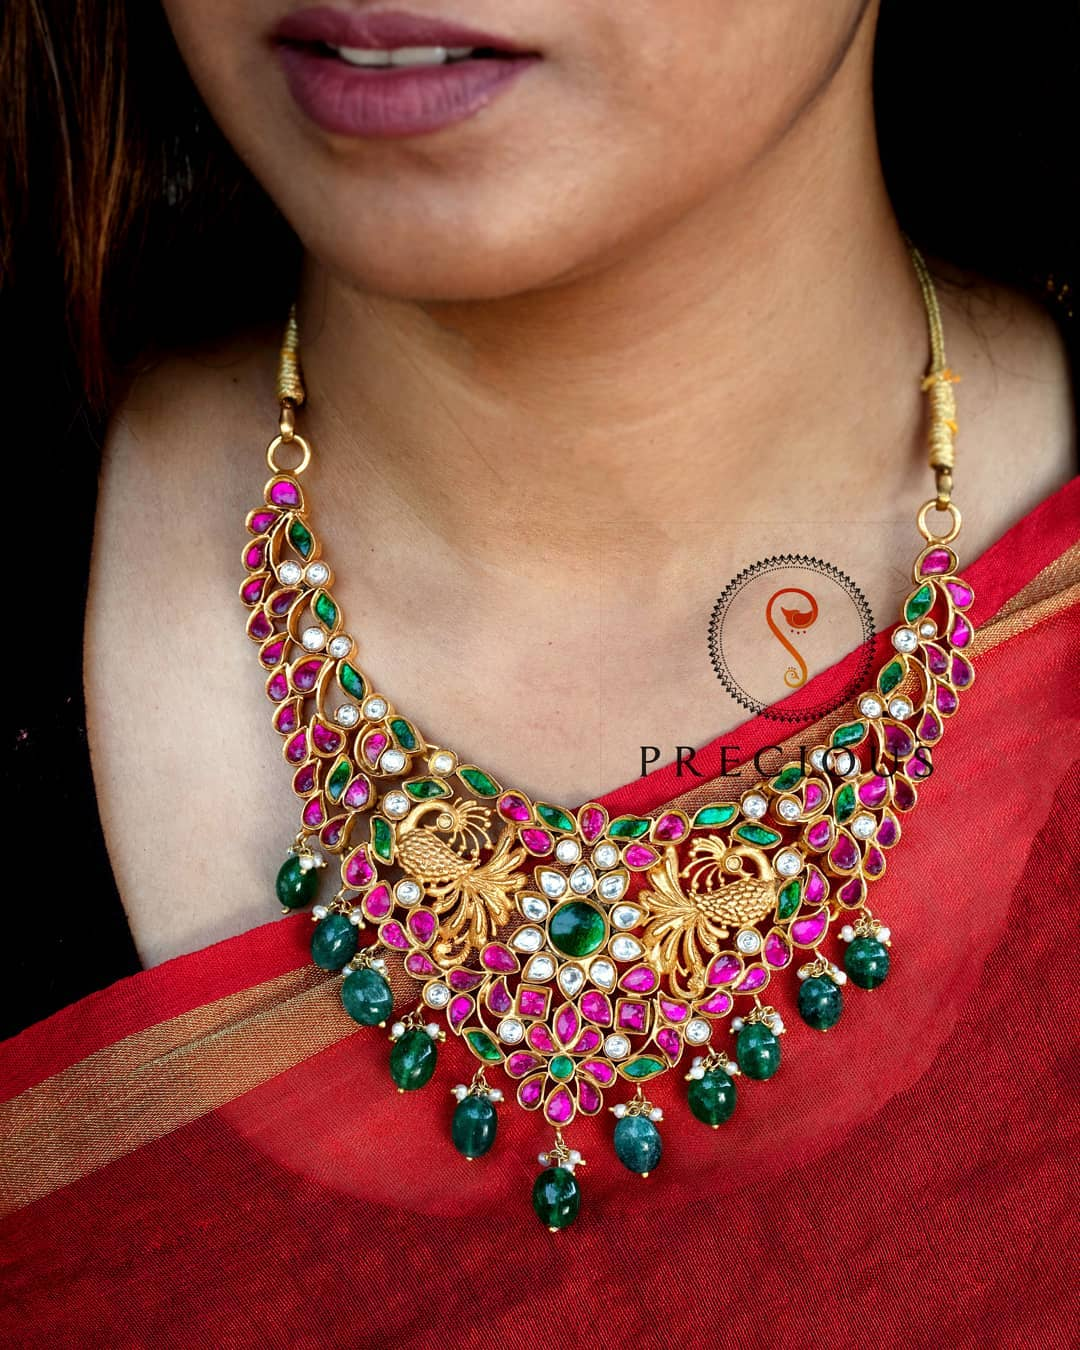 Kundan Puresilver Necklace From Precious And You